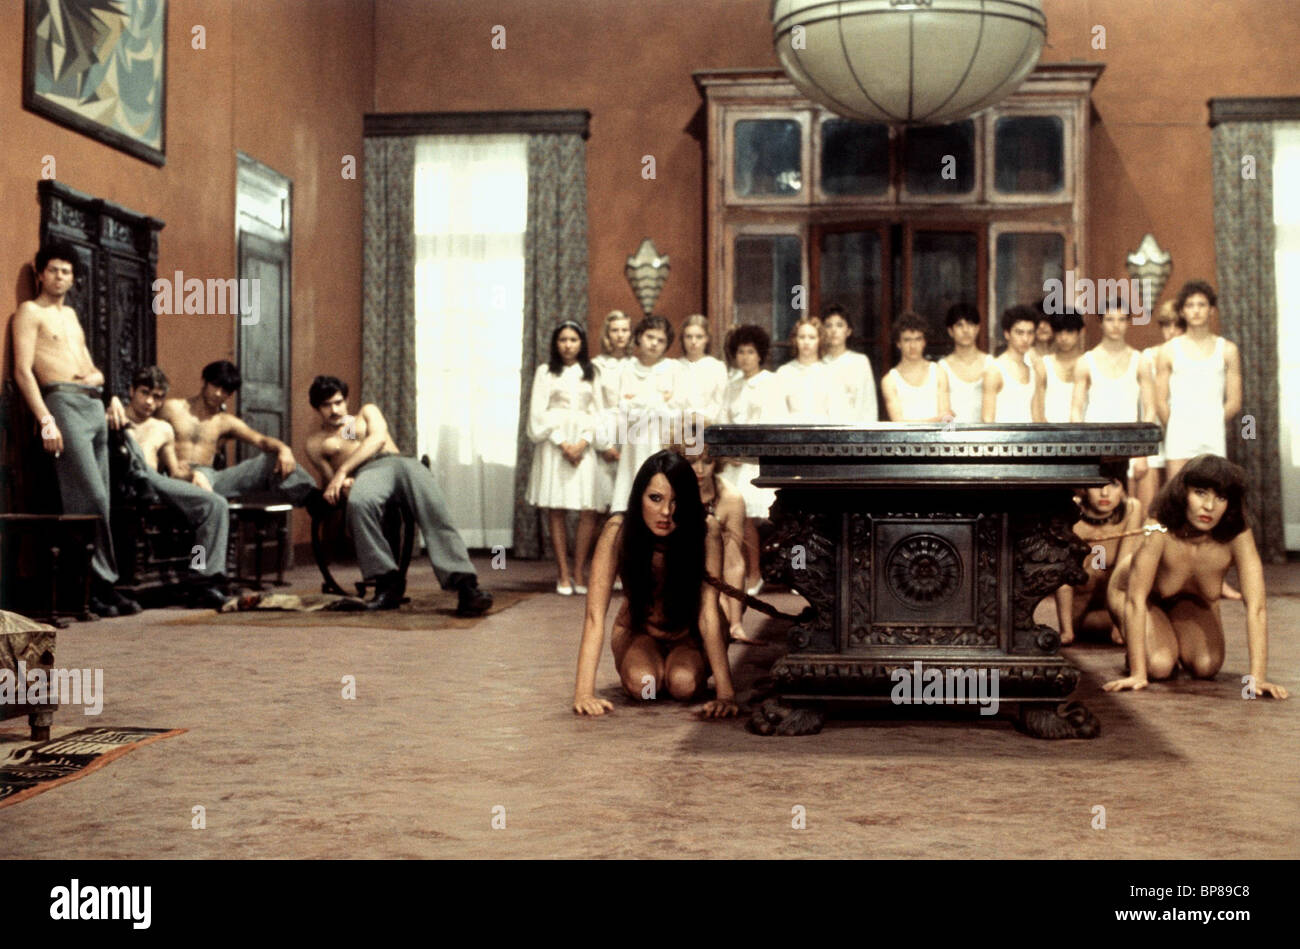 GENERAL SCENE SALO OR THE 120 DAYS OF SODOM (1975) - Stock Image